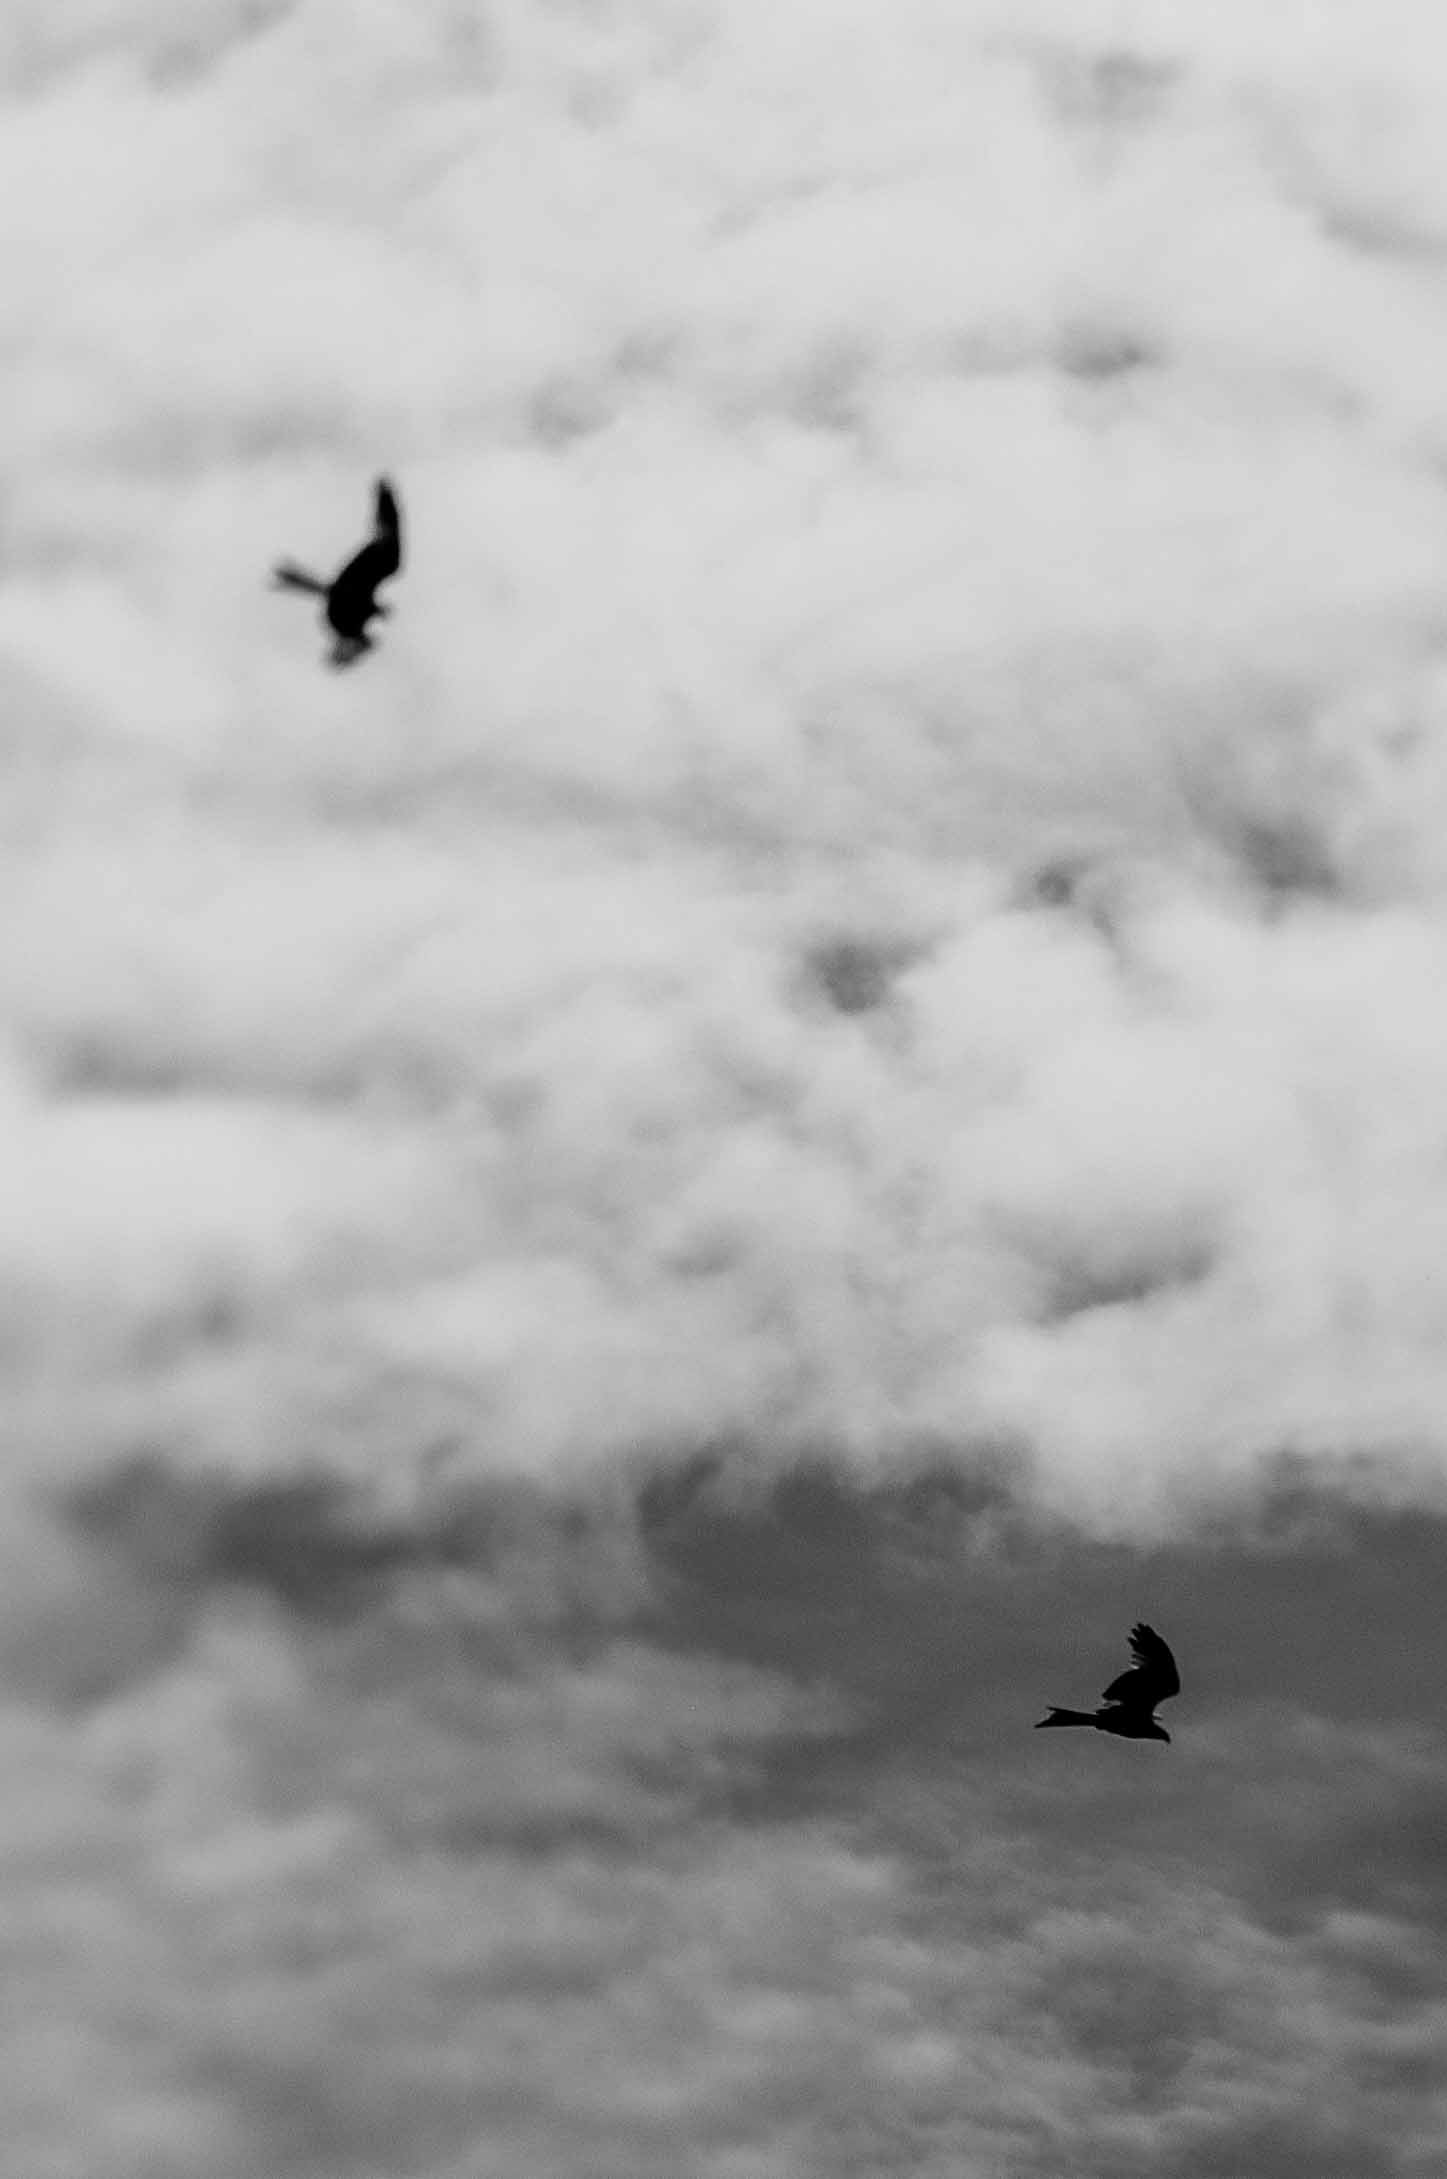 D90 with LensBaby Edge80Optic. Red Kites in the air.